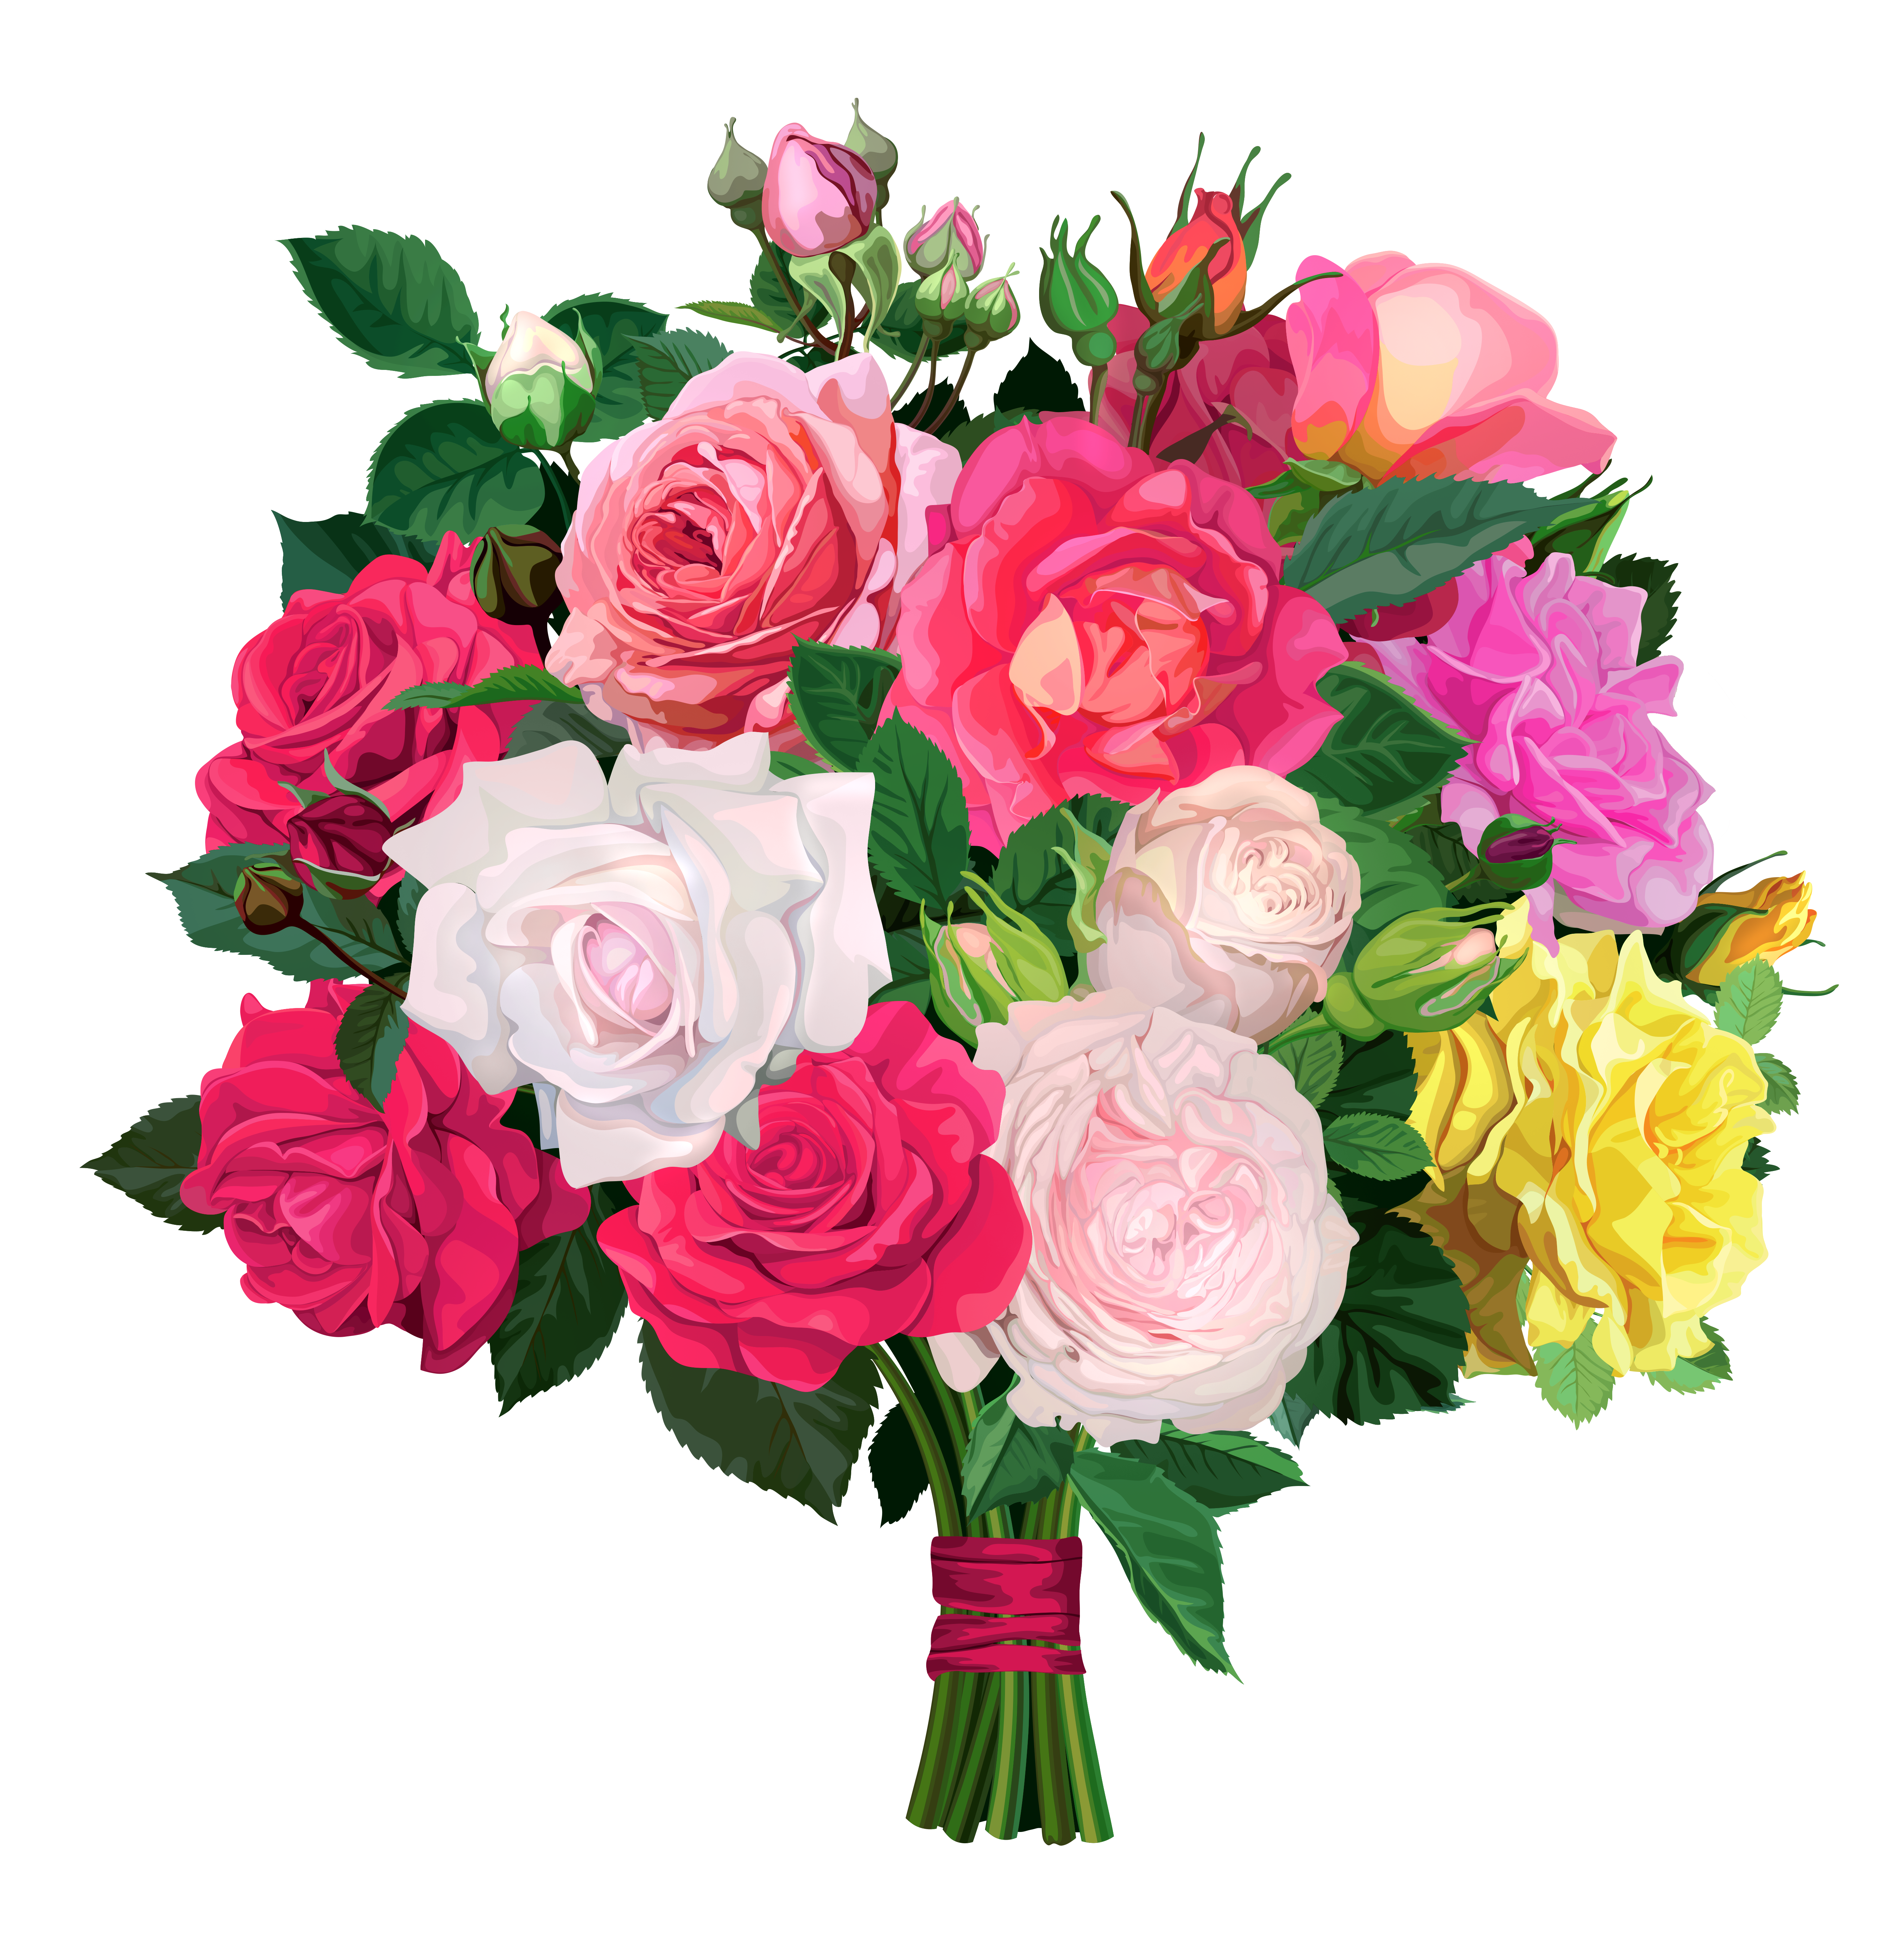 Bouquet Cut Out Png PNG Images